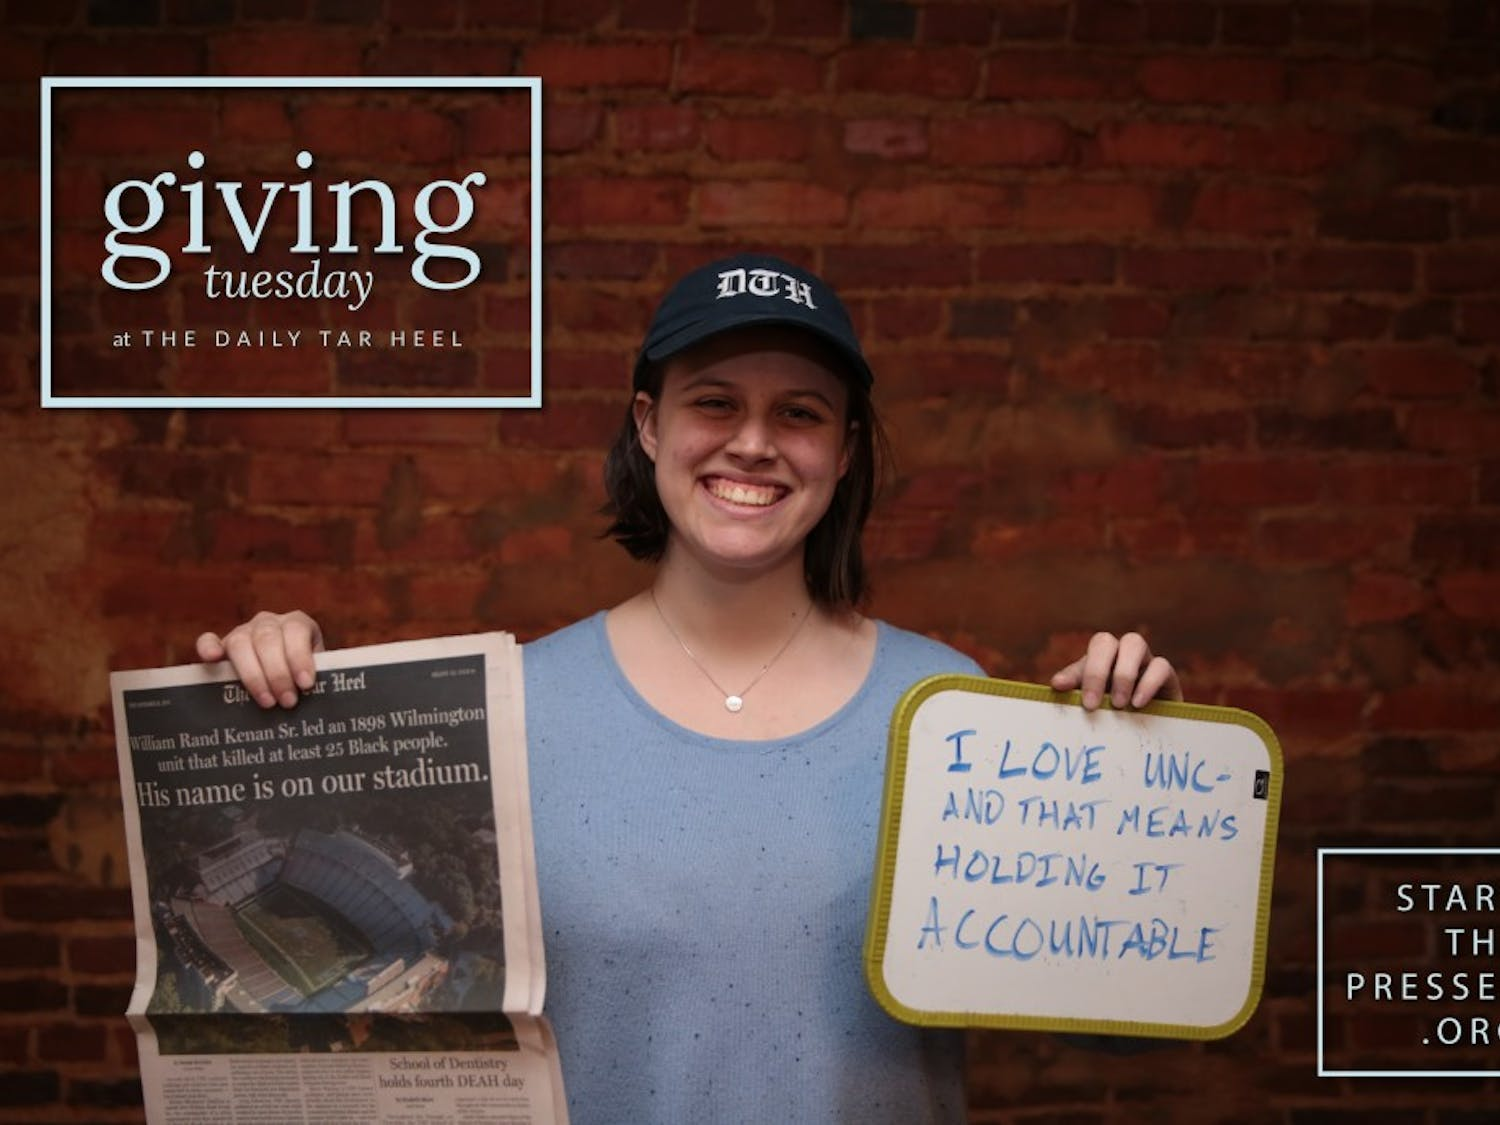 Happy Giving Tuesday! We hope you'll consider The Daily Tar Heel as you plan your year-end giving.  To make a one-time or recurring donation, visit startthepresses.org. Are you a current UNC student? Donate at unc.live/dth.